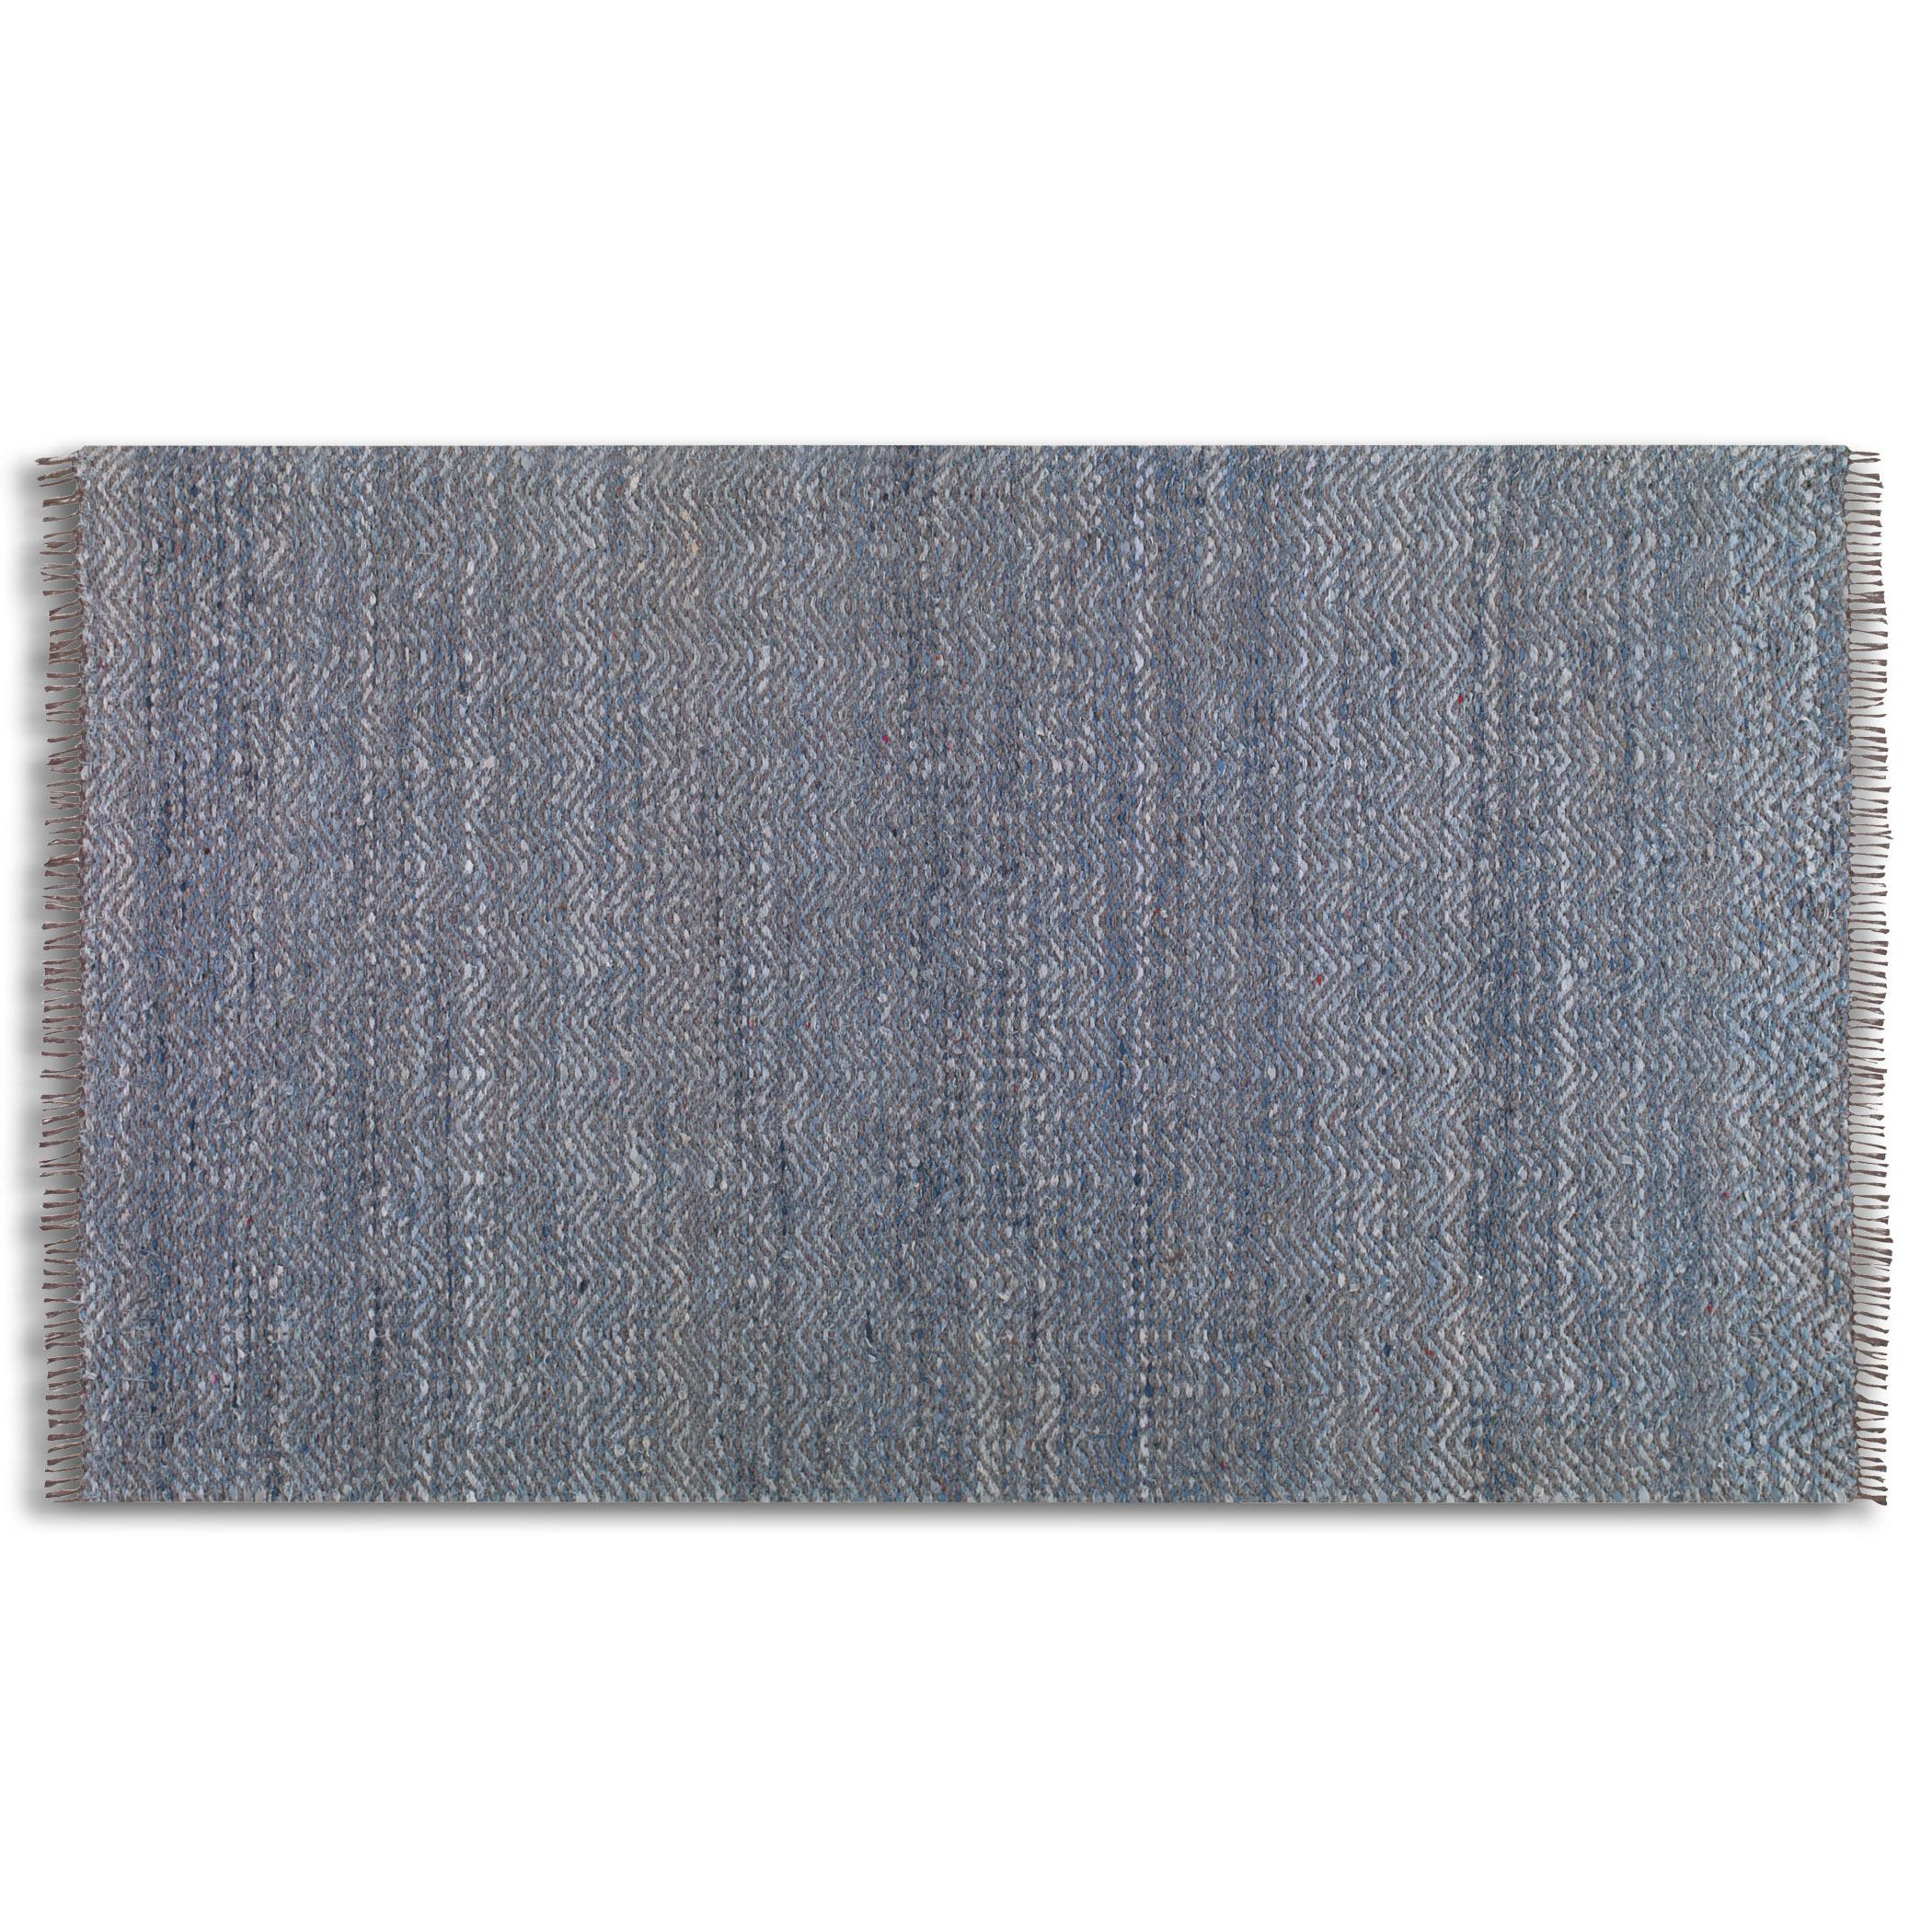 Uttermost Rugs Cascadia 5 X 8 Denim Rug - Item Number: 71048-5